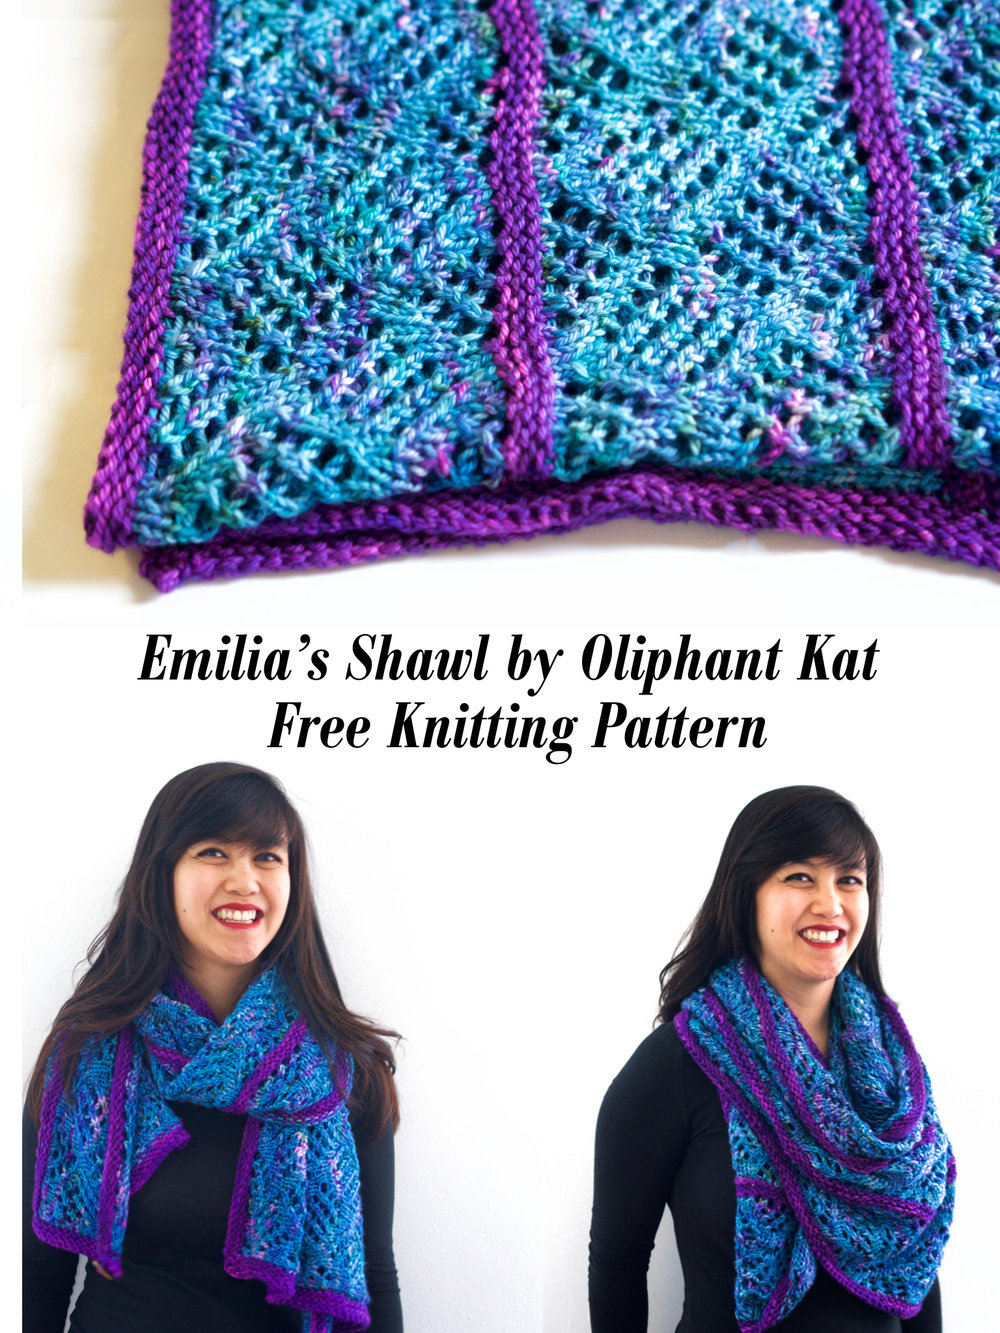 Emilia_Shawl_Free_Knitting_Pattern_4.jpg